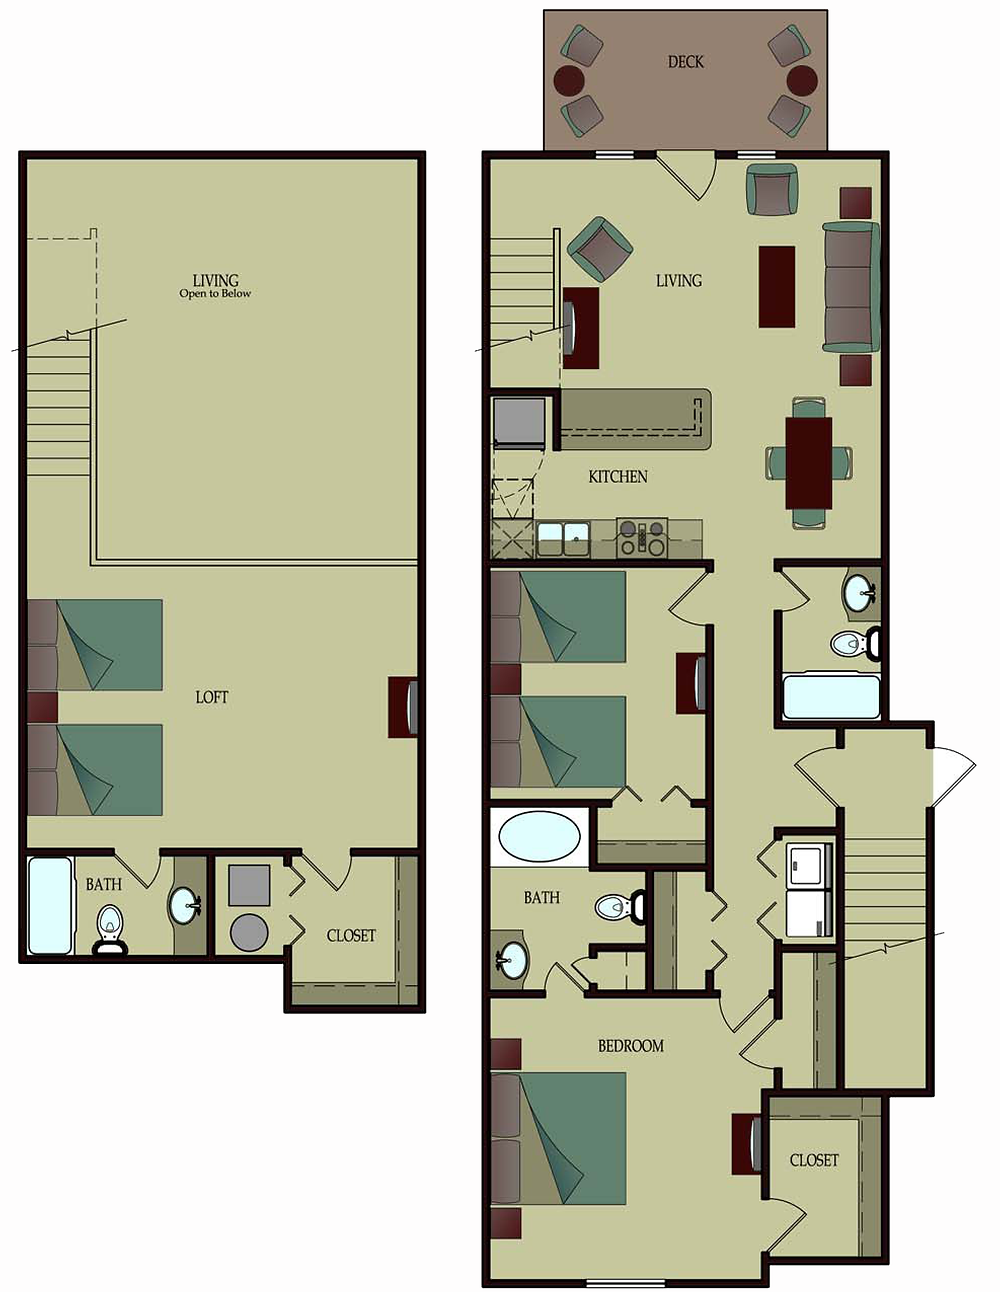 3 Bedroom Loft - Grand Palms Resort for your Myrtle Beach vacation